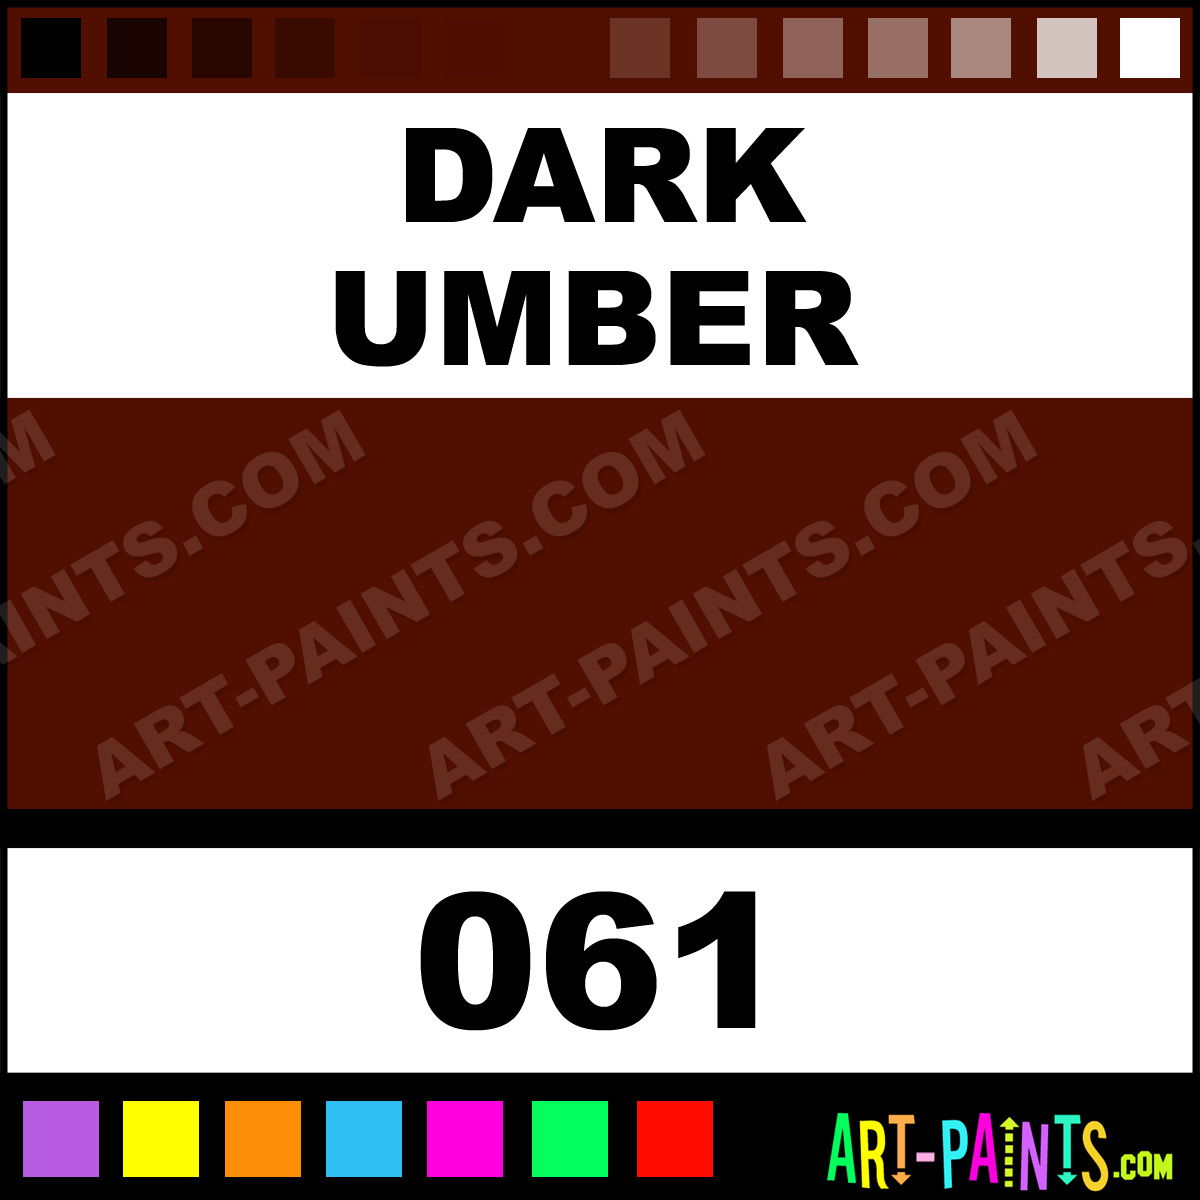 dark umber fourinone paintmarker marking pen paints